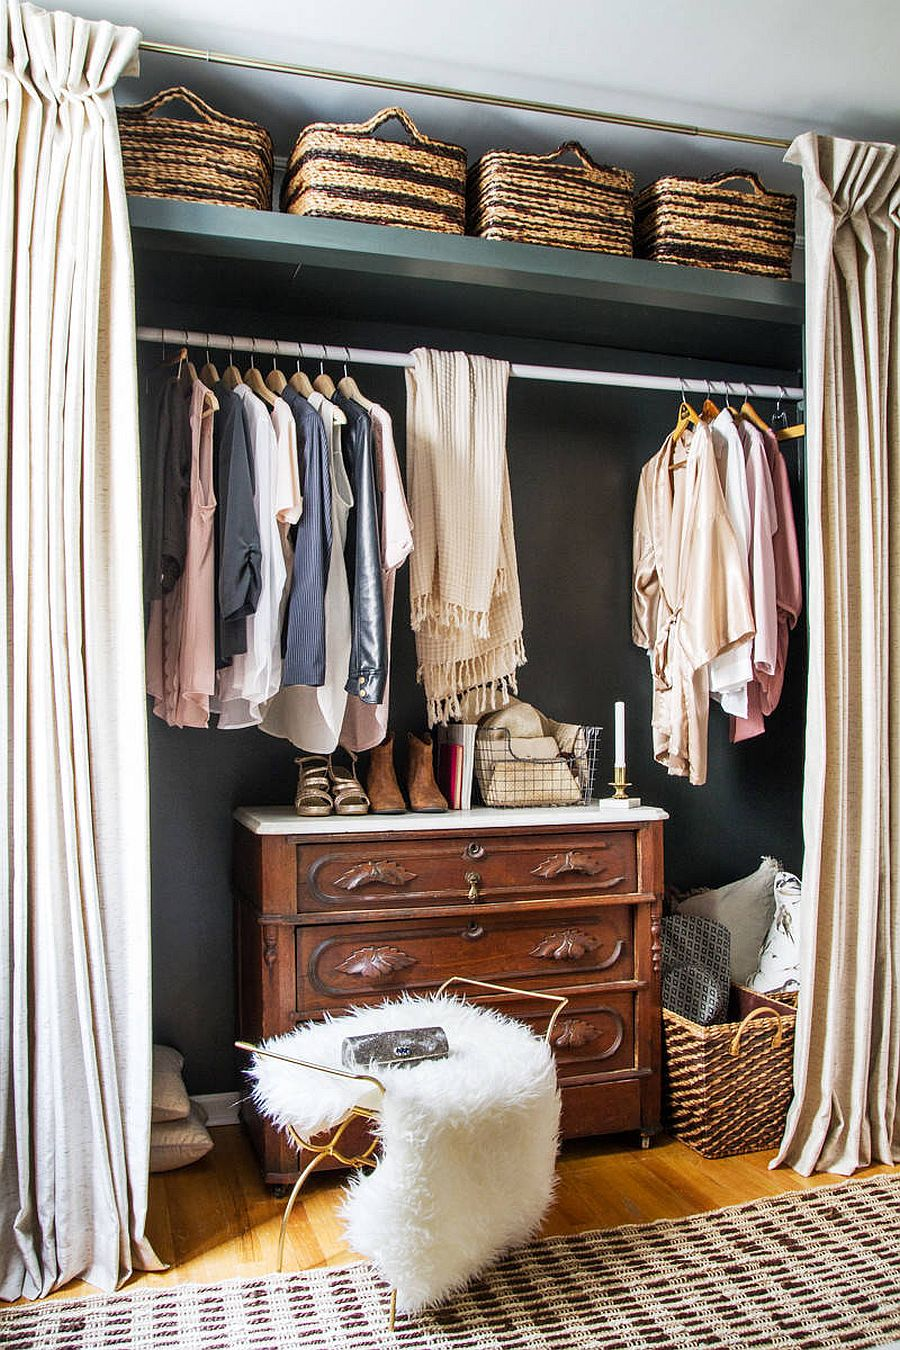 Turn the bedroom niche into a beautiful closet with curtains, a hanging rod and a traditional dresser